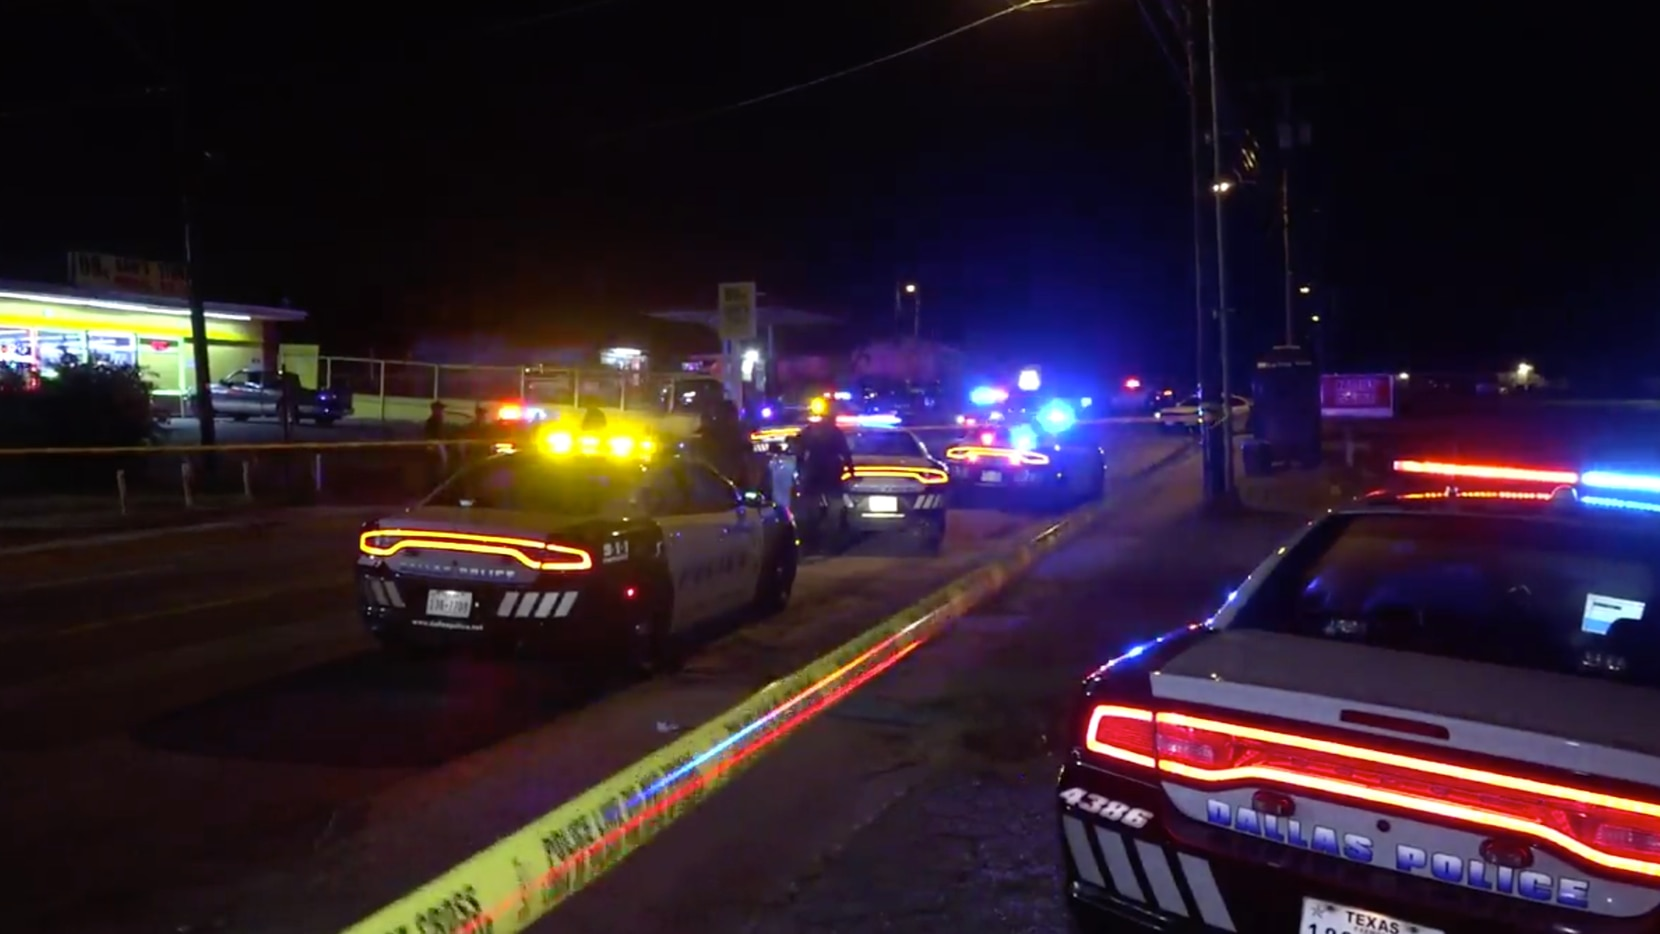 Police were called to a fatal shooting on Ann Arbor Avenue on June 20.